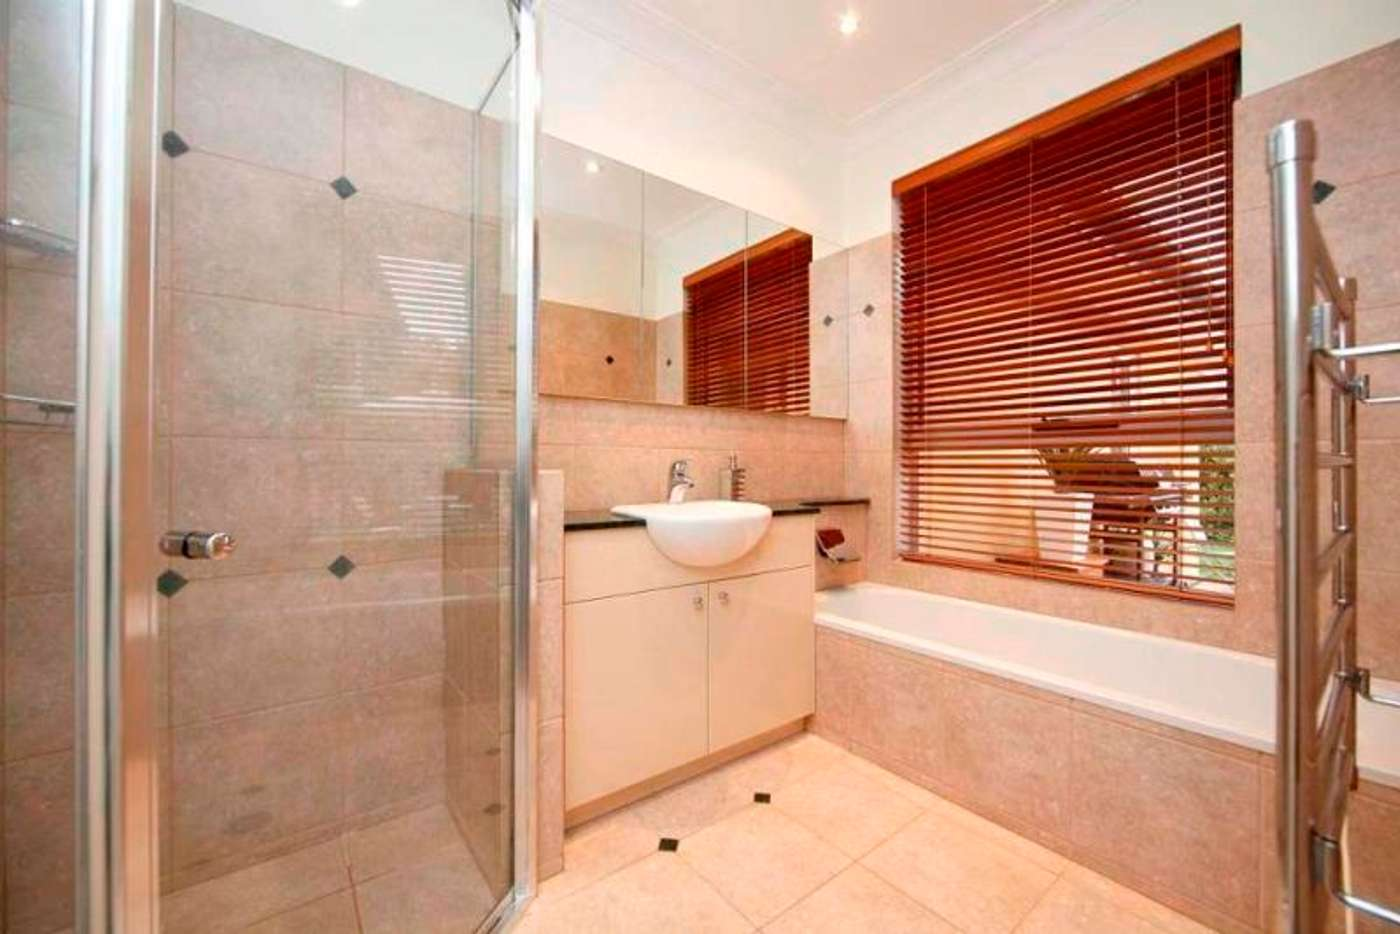 Sixth view of Homely house listing, 79 Stonehaven Crescent, Deakin ACT 2600